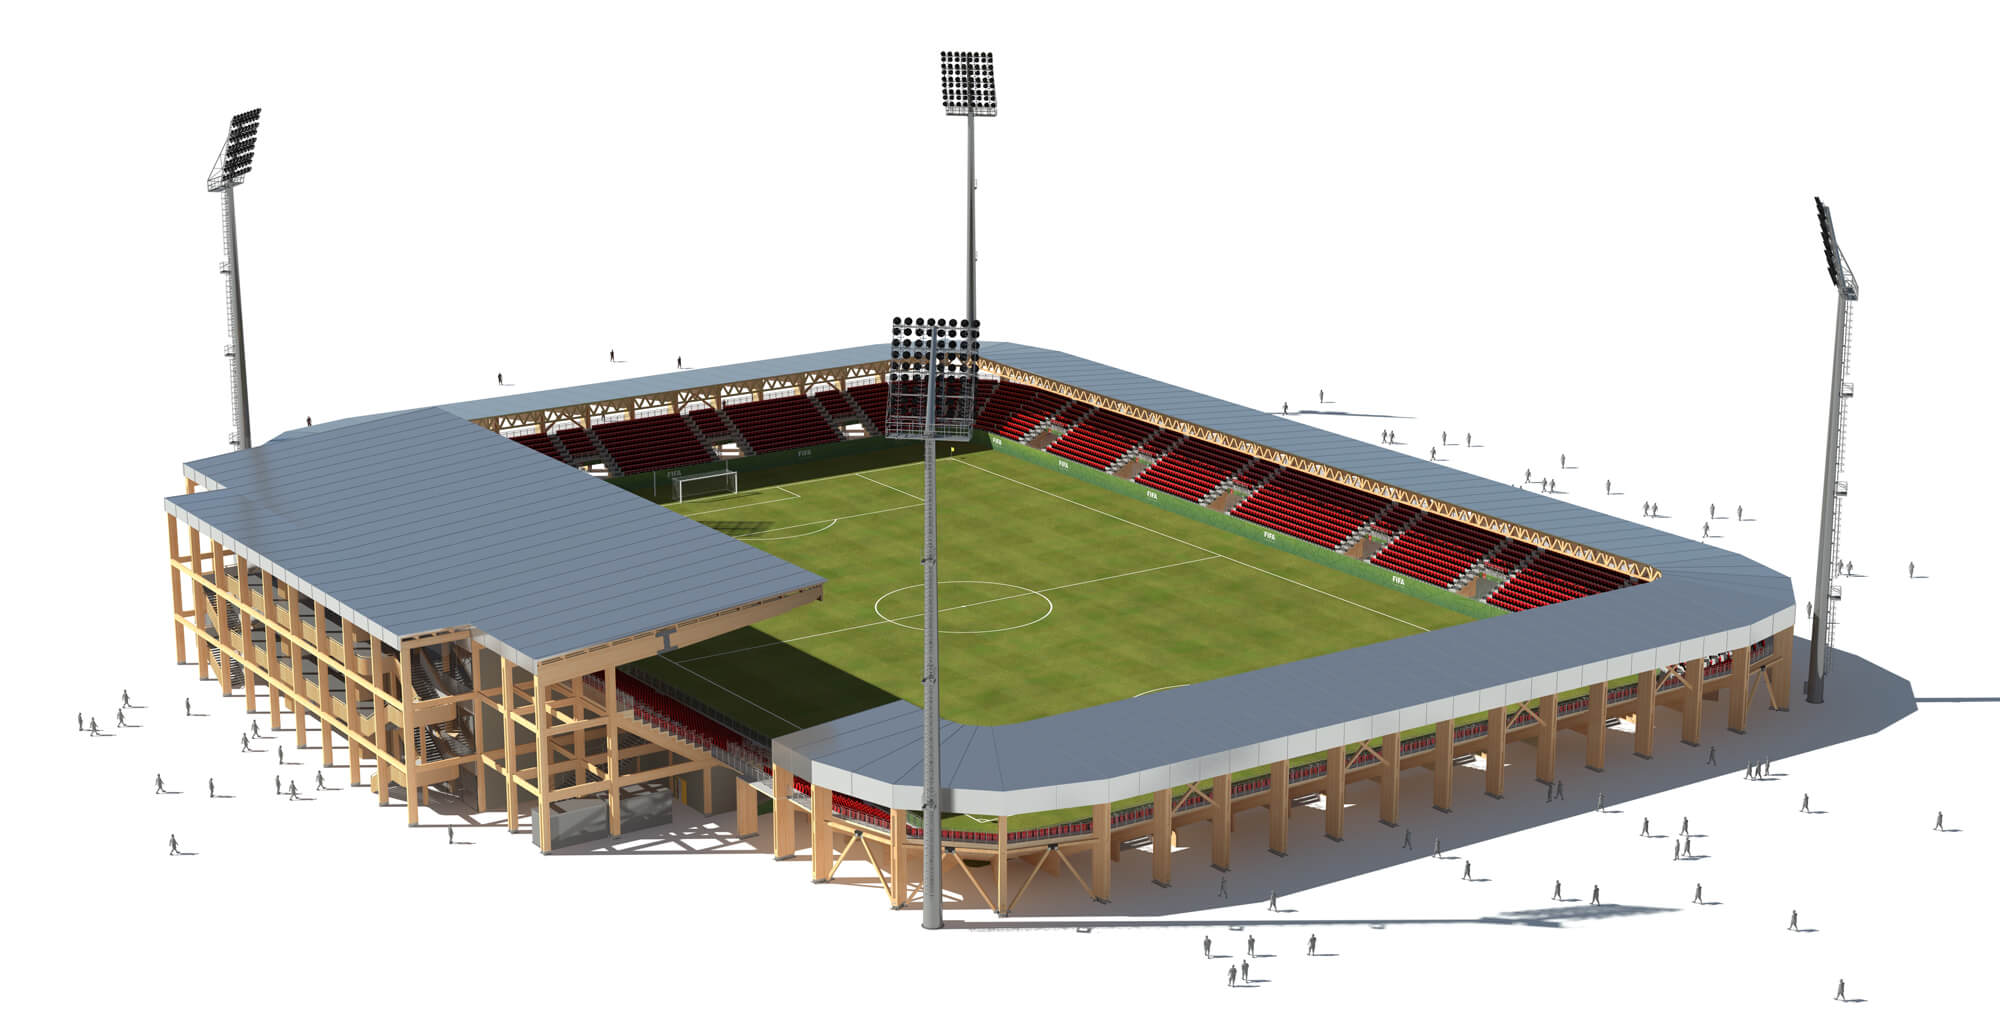 A rendering of a 10,000-seat modular stadium using Bear Stadiums and Rubner Holzbau's modular wood systems.